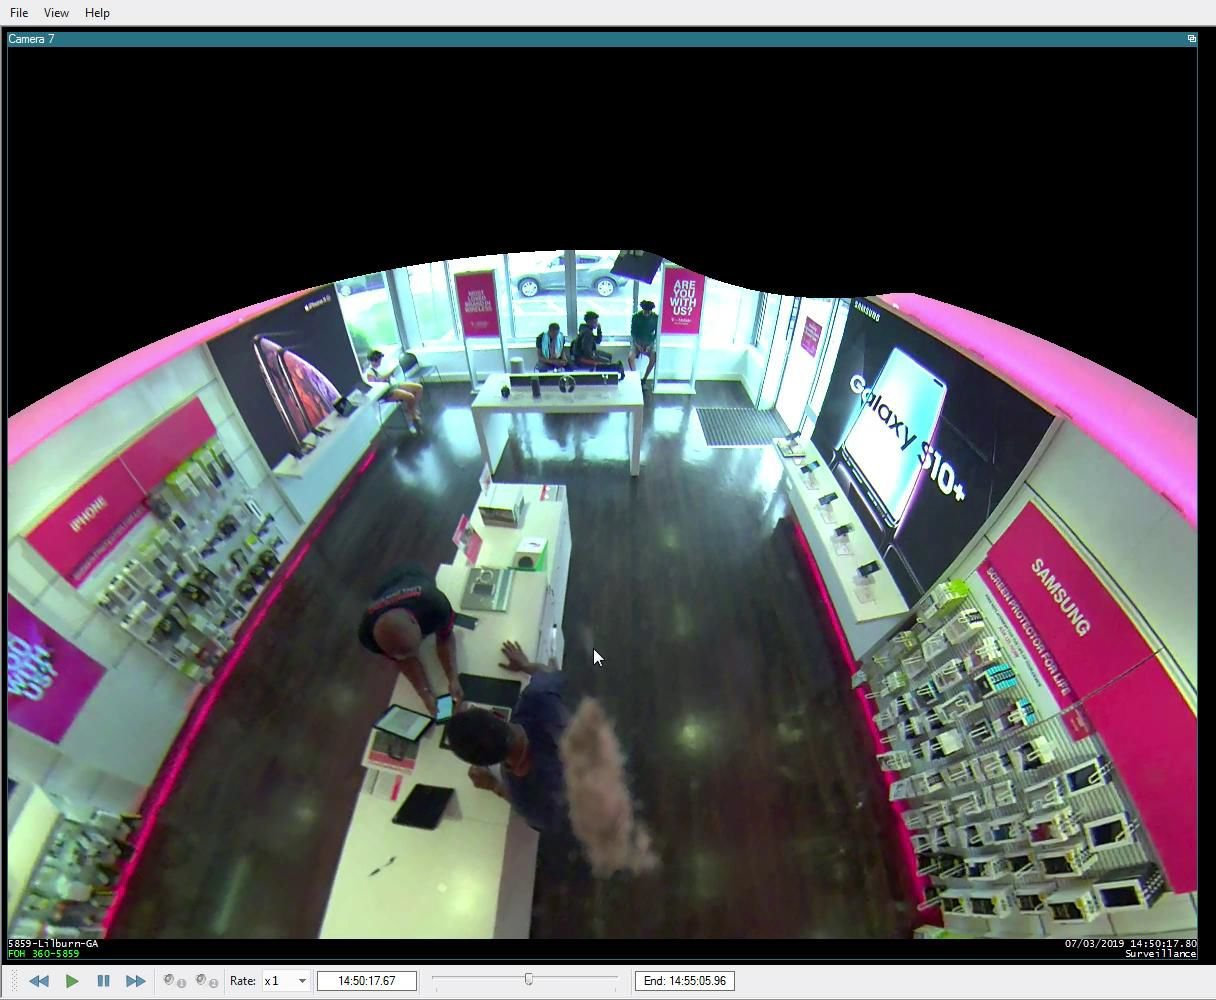 WATCH: Security camera catches man stealing two new iPhones